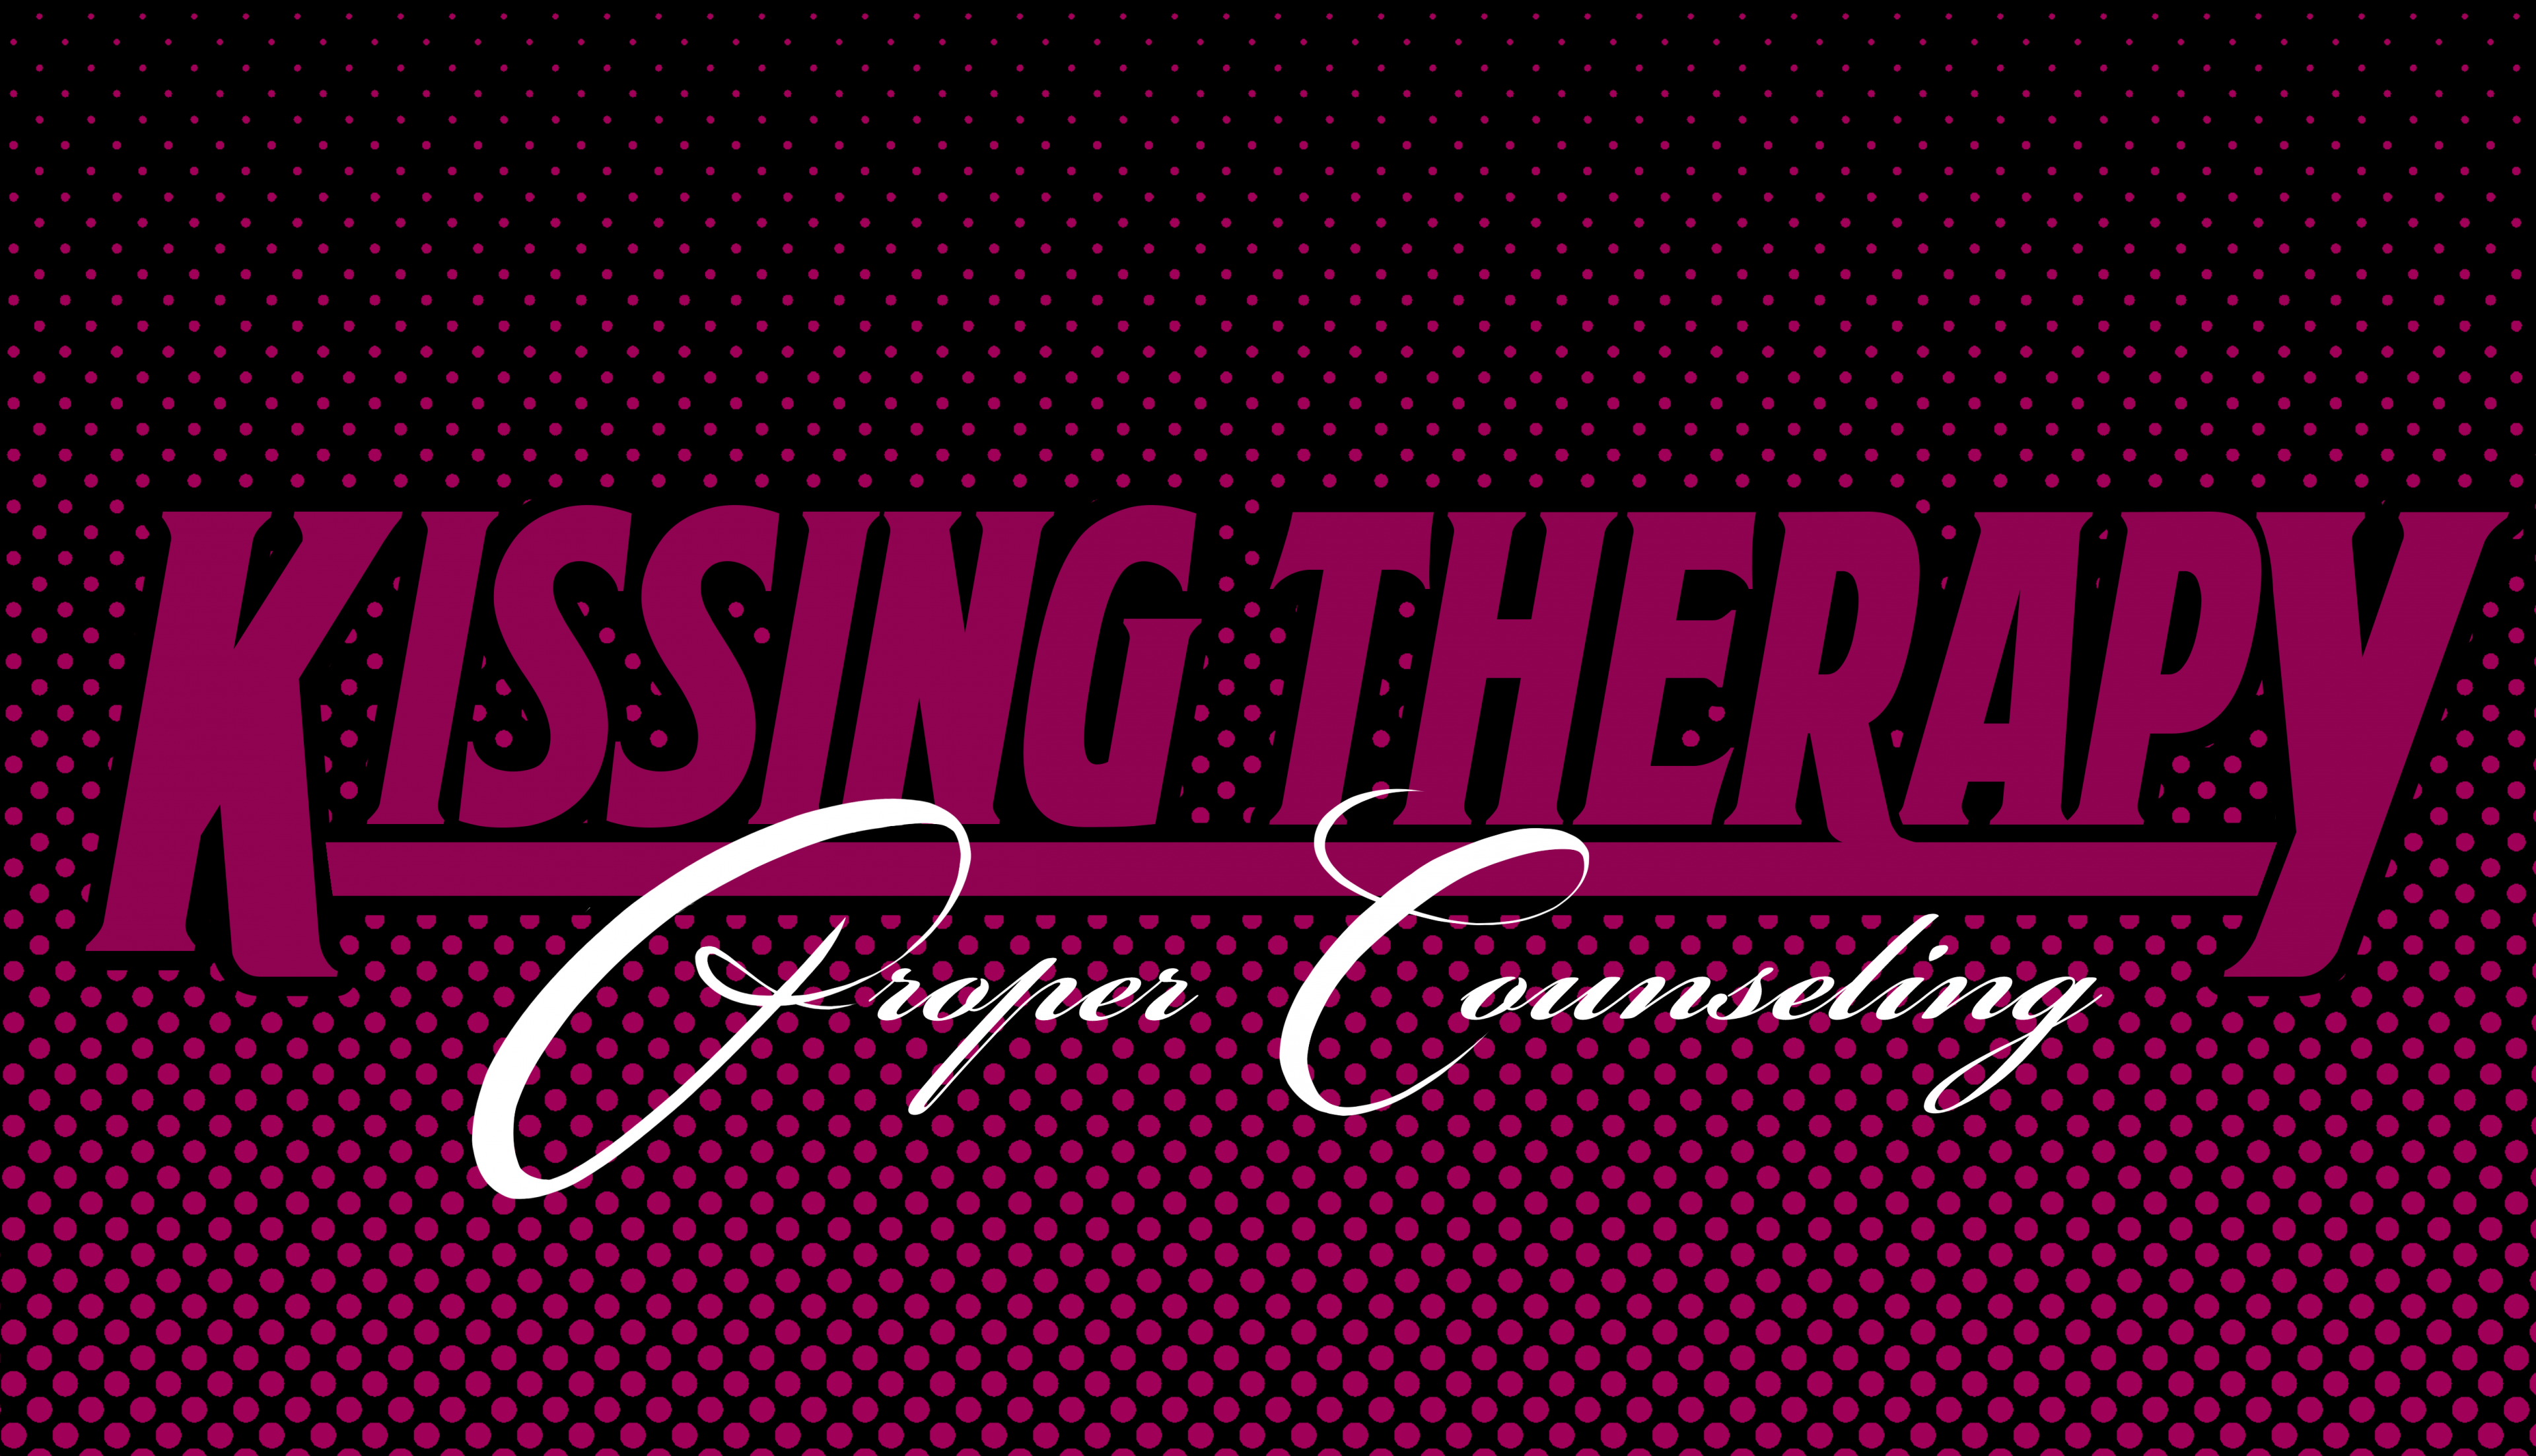 Kissing Therapy Proper Counselling poster